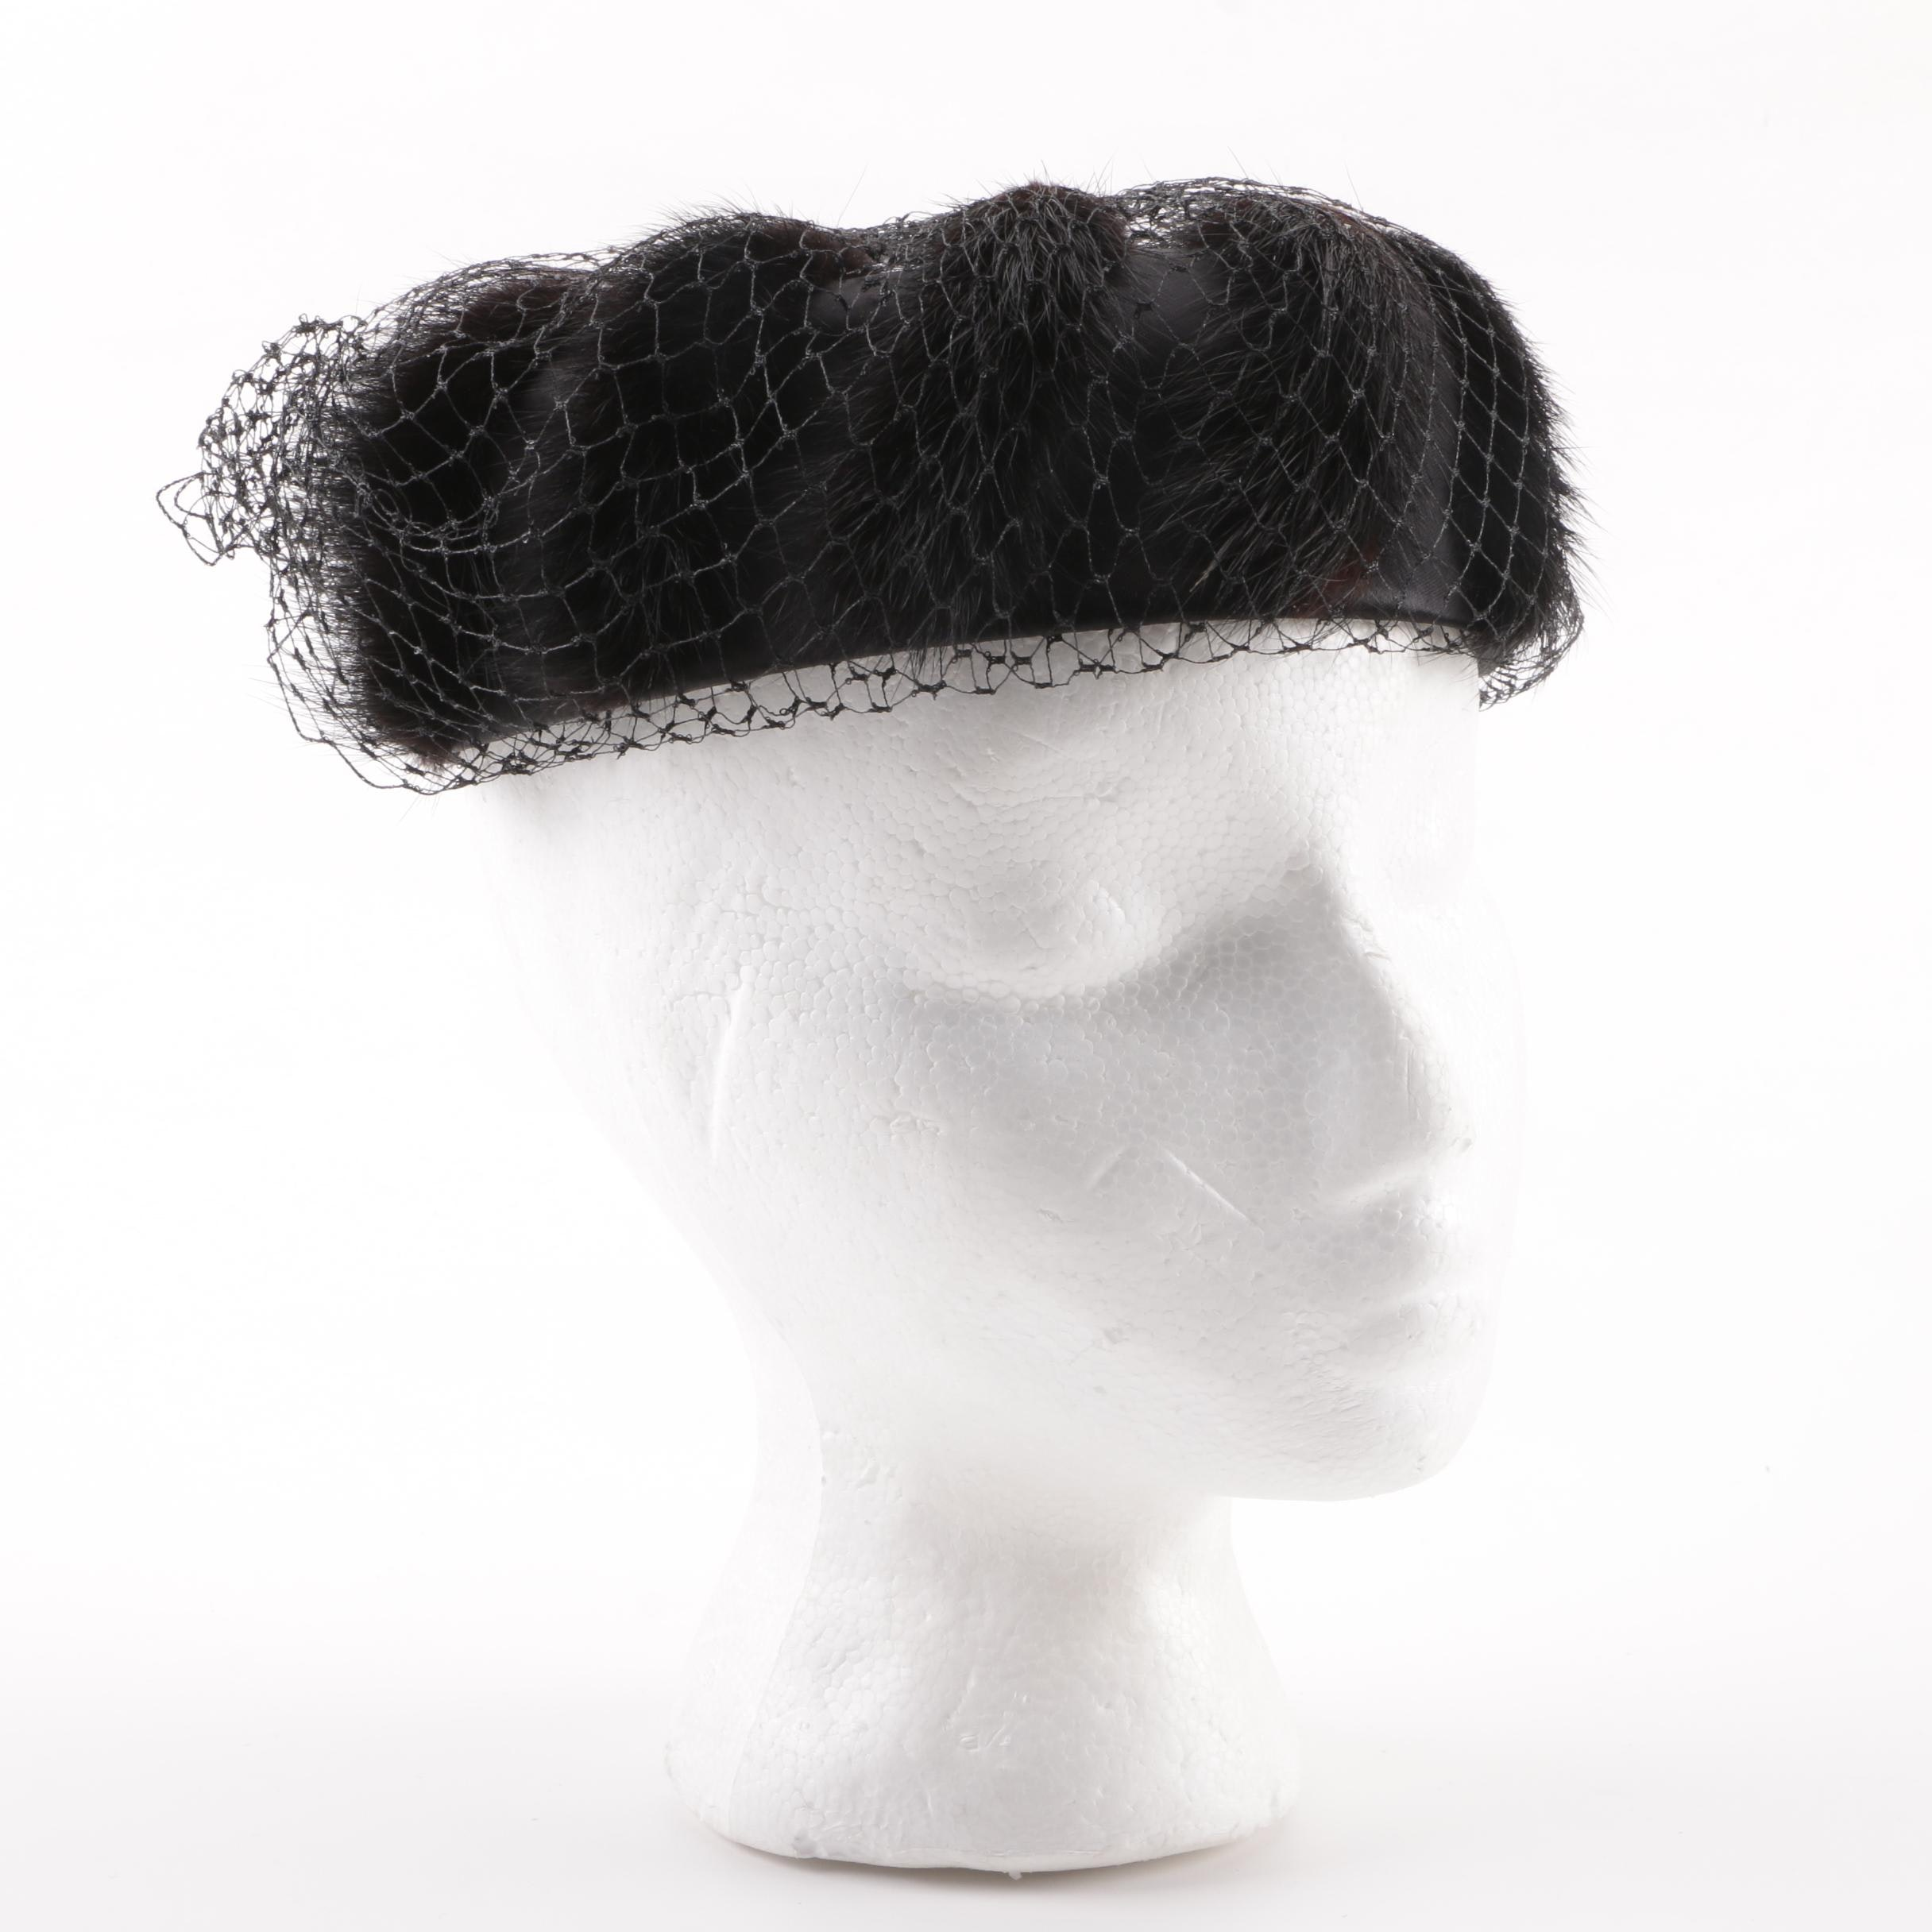 Circa 1950s Black Netted Fascinator with Mink Fur Detail and Hat Box